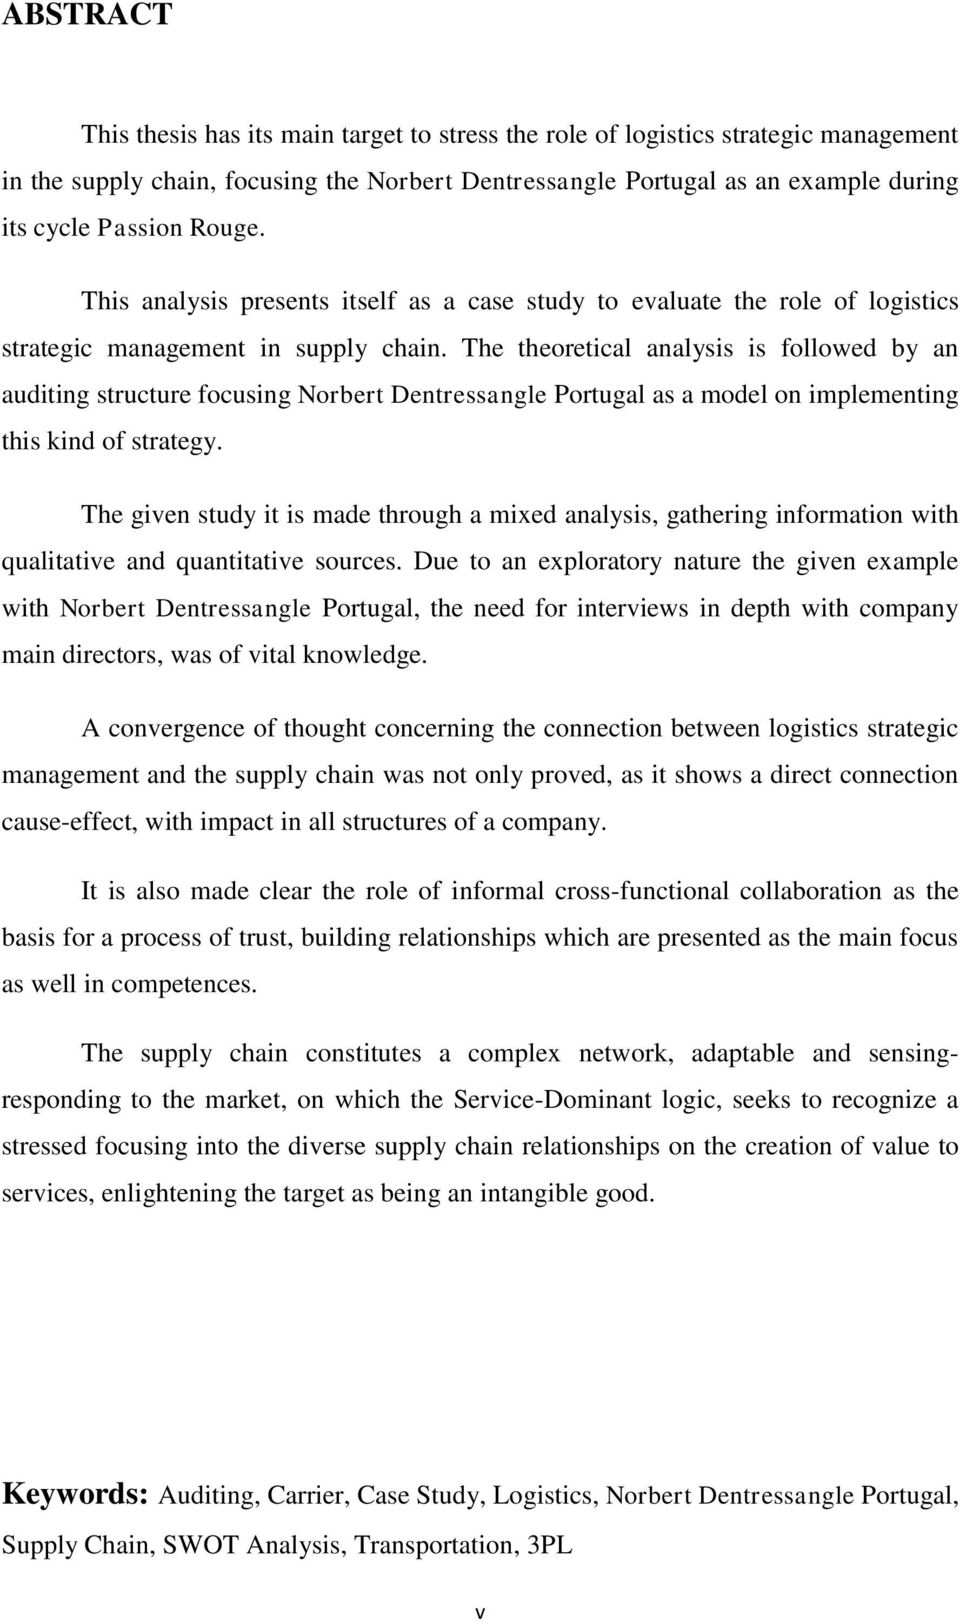 The theoretical analysis is followed by an auditing structure focusing Norbert Dentressangle Portugal as a model on implementing this kind of strategy.